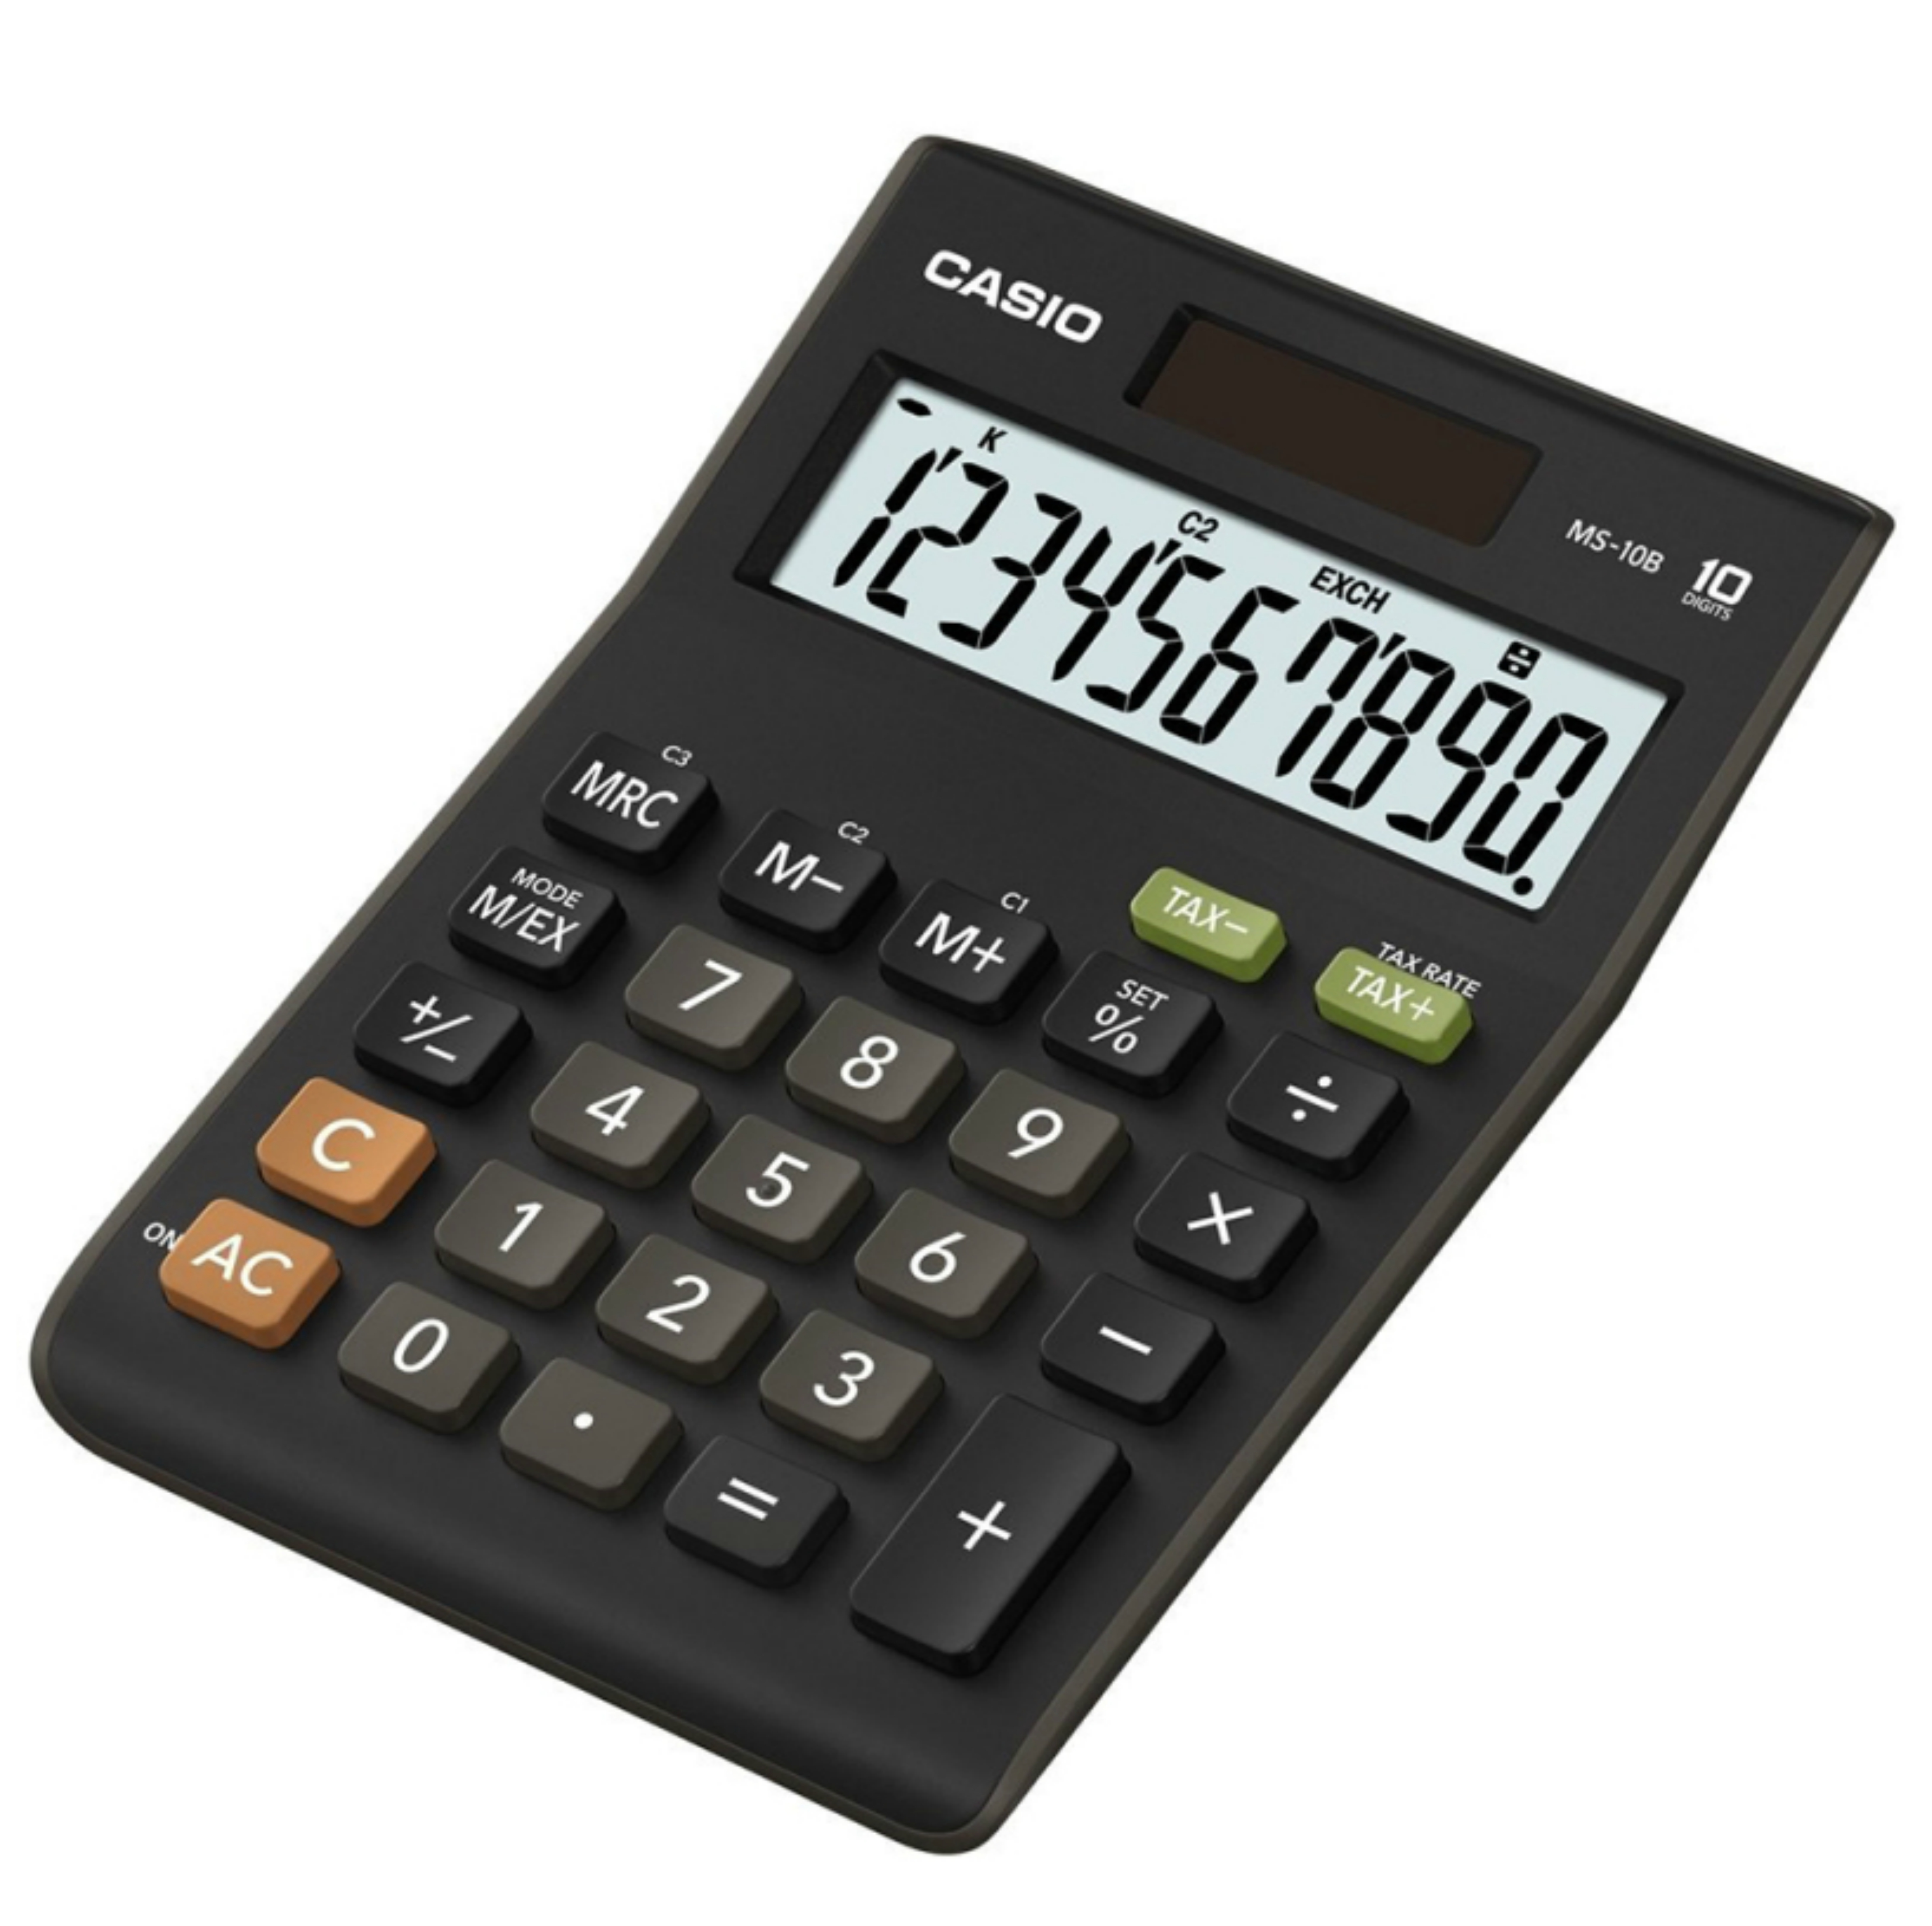 Casio MS10B-S Calculator|D10 Digit|Dual Powerd|Large Display|Tax Function|Black|